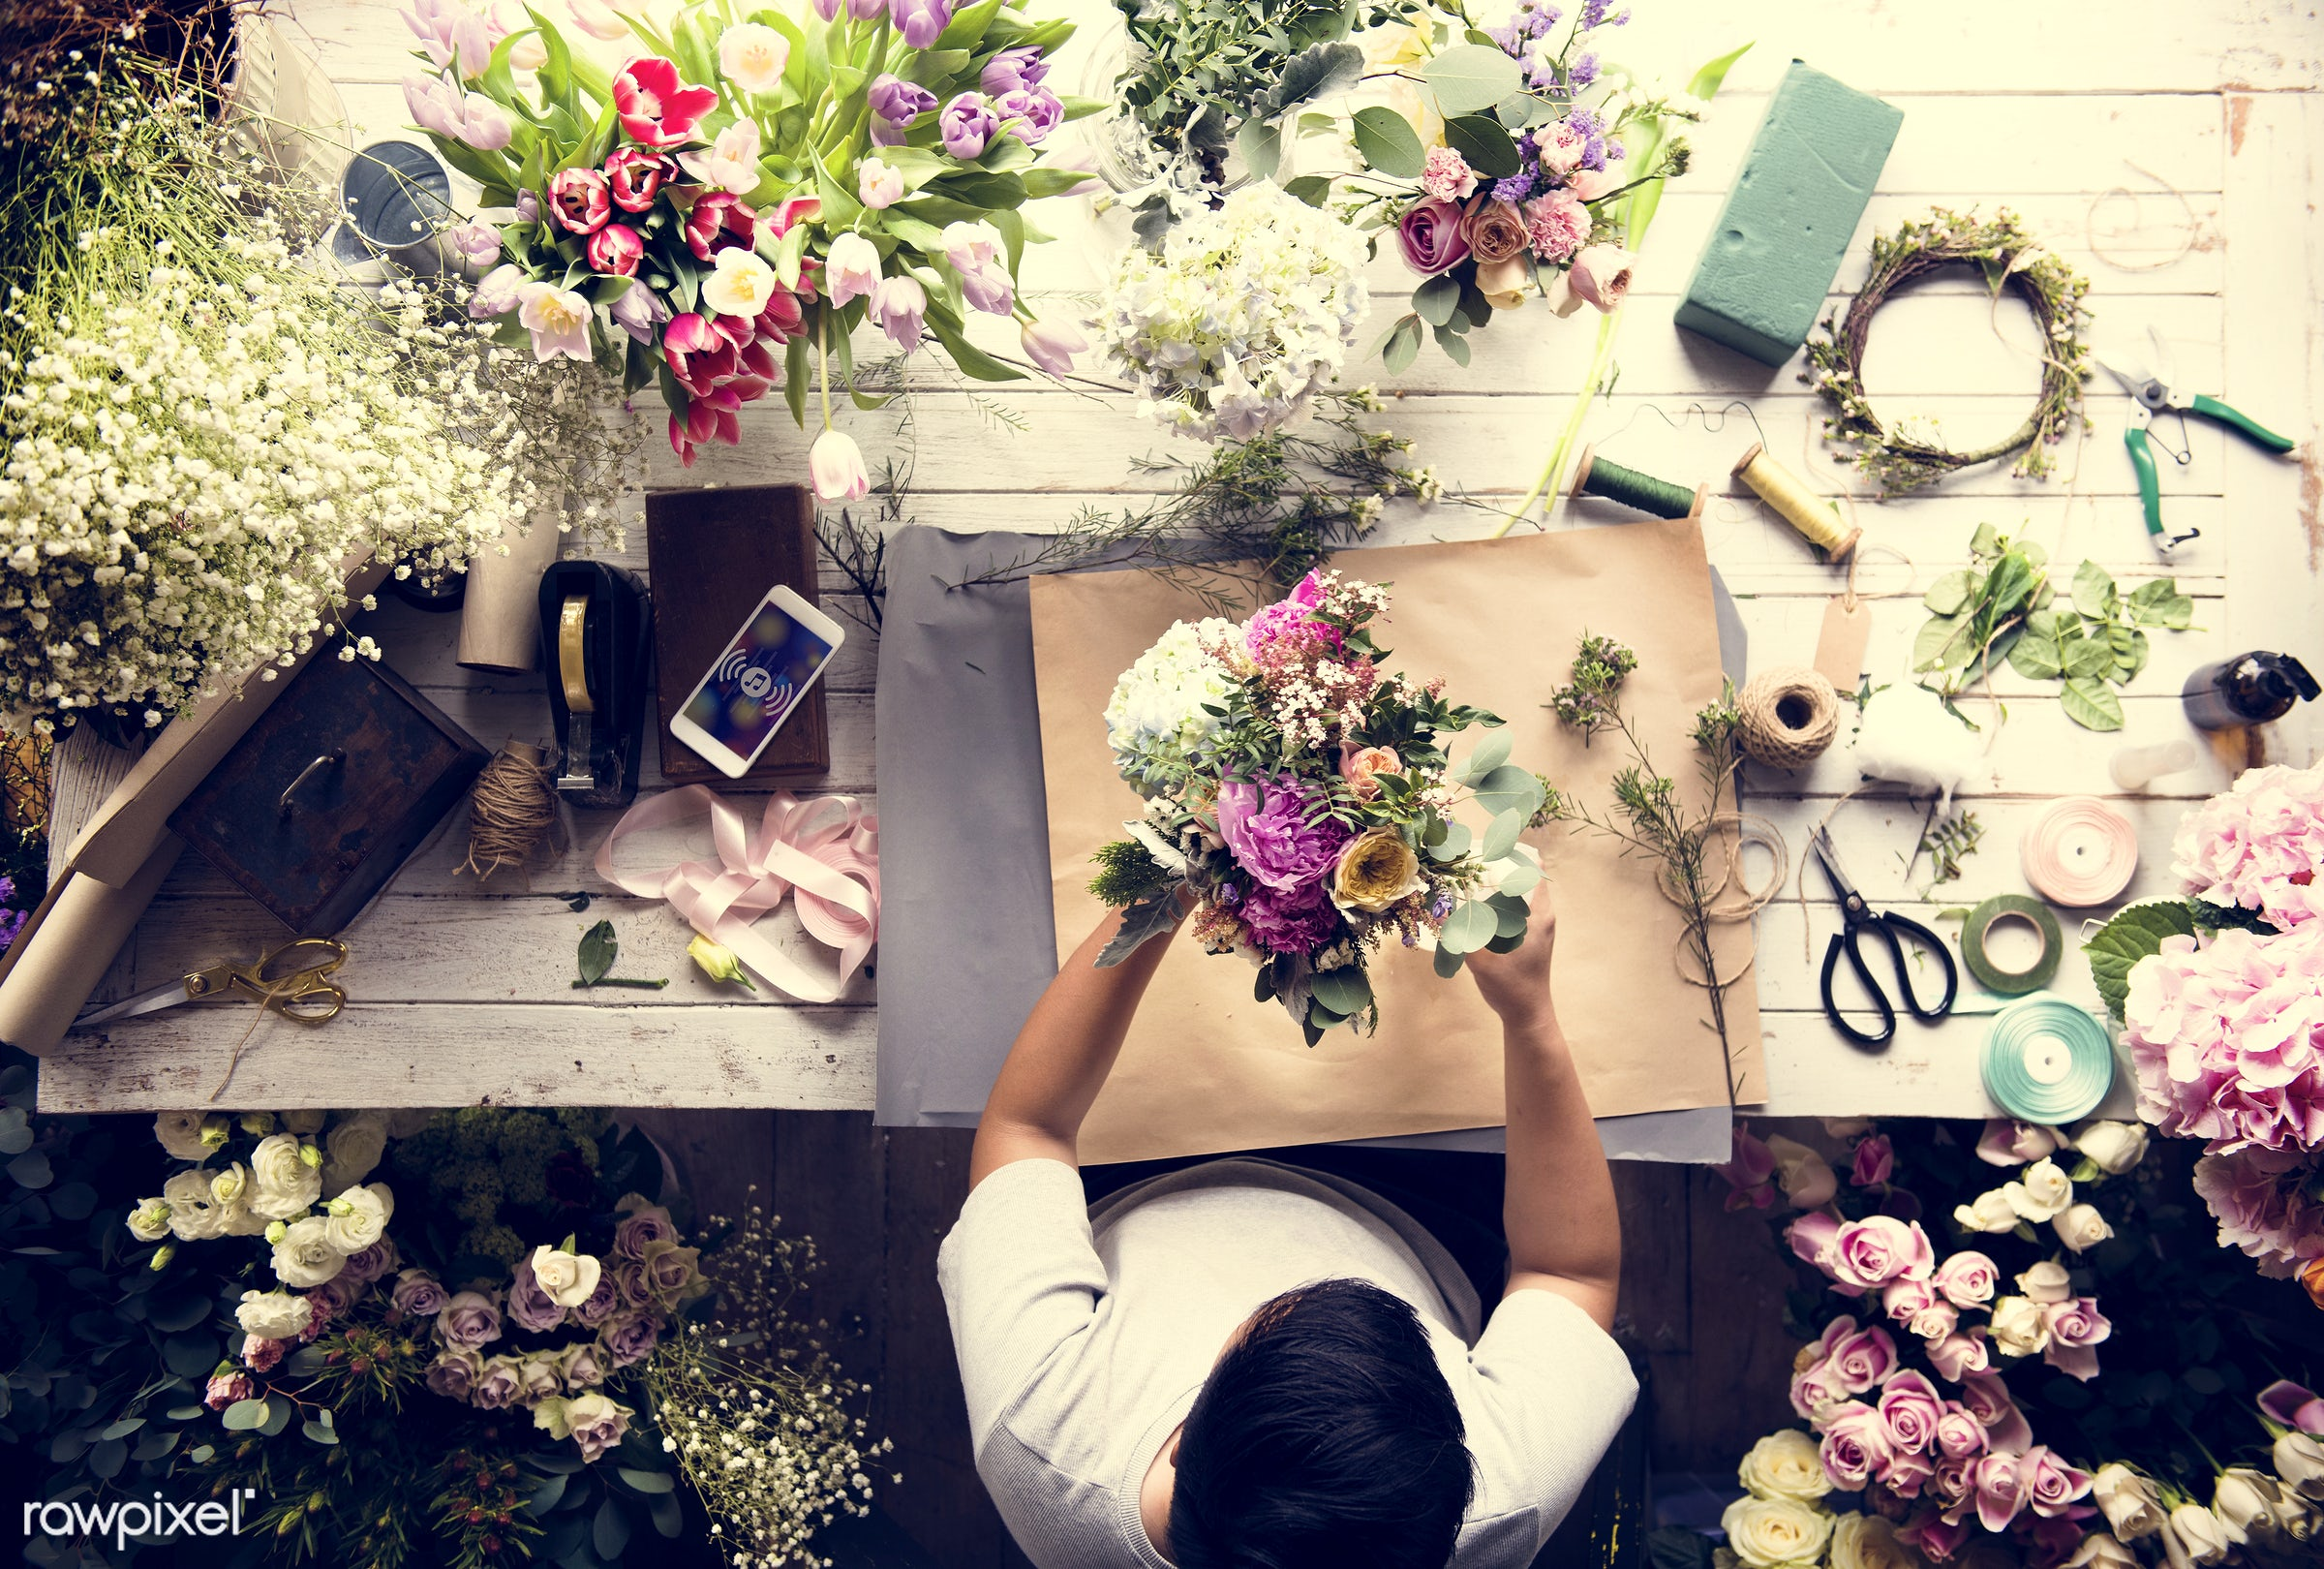 bouquet, shop, detail, person, people, decor, nature, flowers, work, refreshment, hold, career, florist, present,...